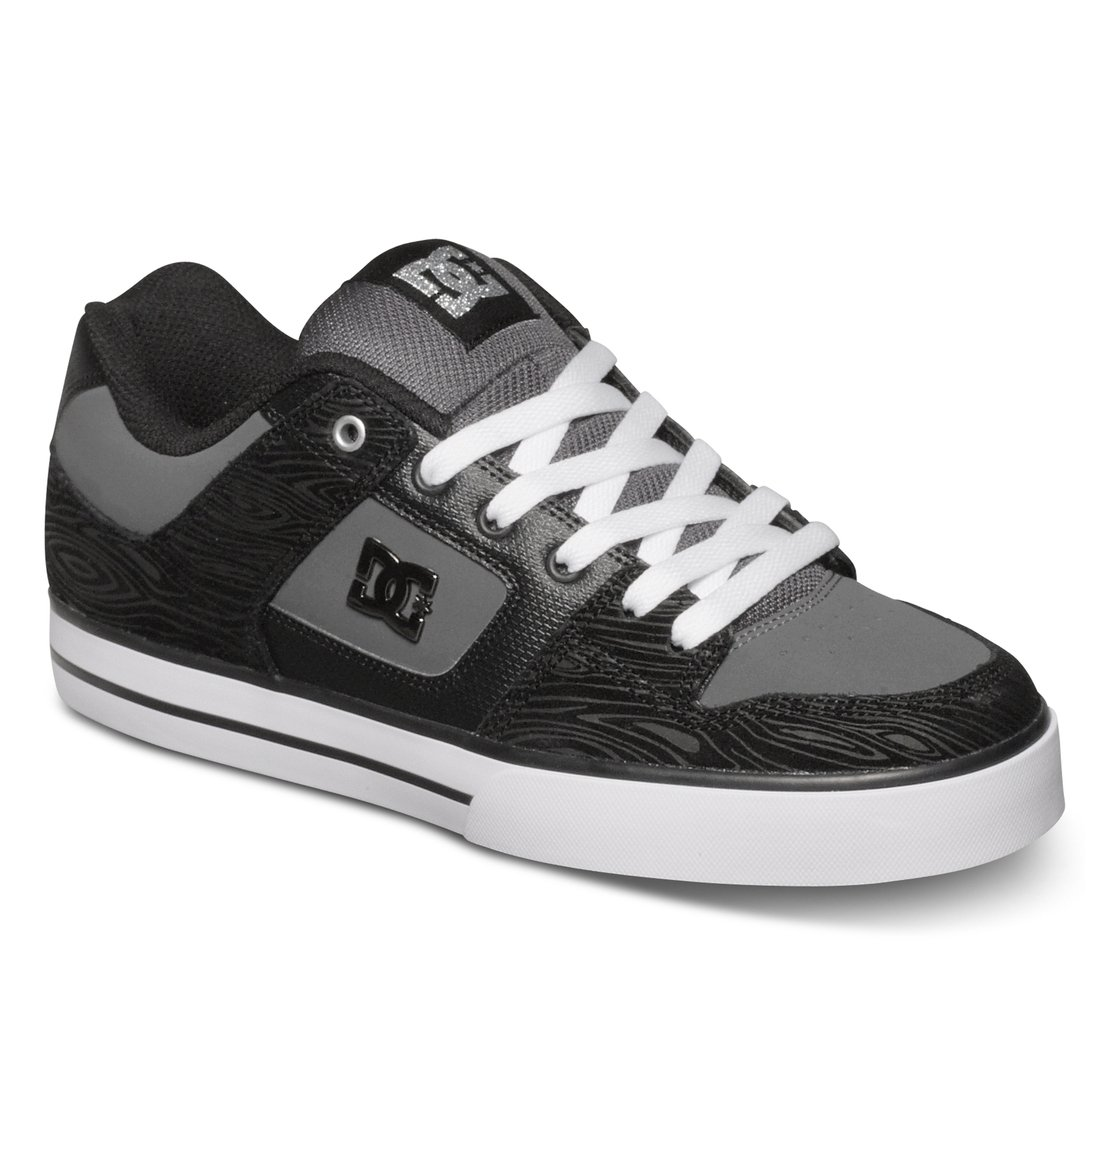 DC Shoes Sale - Discover all DC Shoes Clothes and Accessories sales on the official DC Shoes online shop. Free delivery on all orders!! DC Shoes uses cookies in order to provide you with customised services and offers. By continuing to browse the DC Shoes website you agree to the use of cookies.